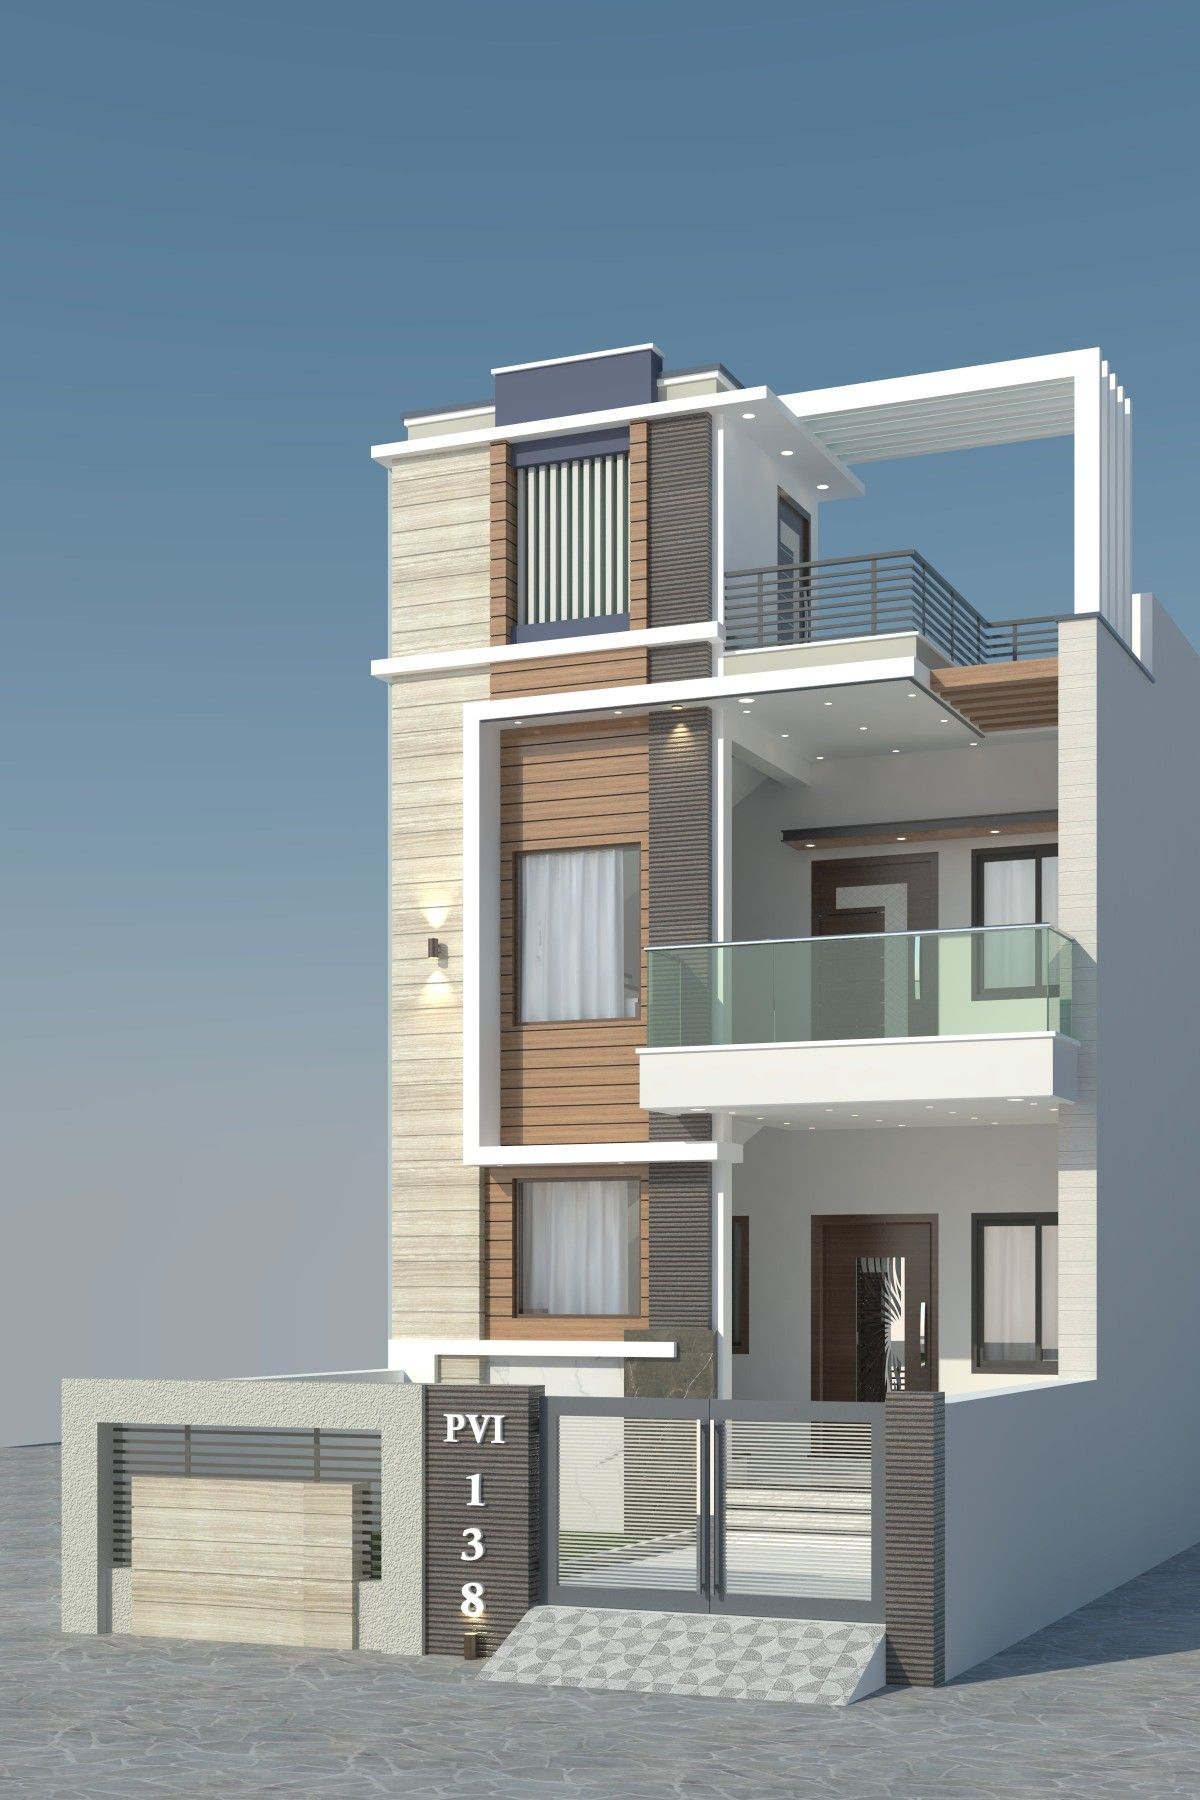 Pin By Thanh Nguyễn On 20x50 House Elevation With Outer Staircase In 2020 Small Apartment Building Design Duplex House Design Small House Elevation Design